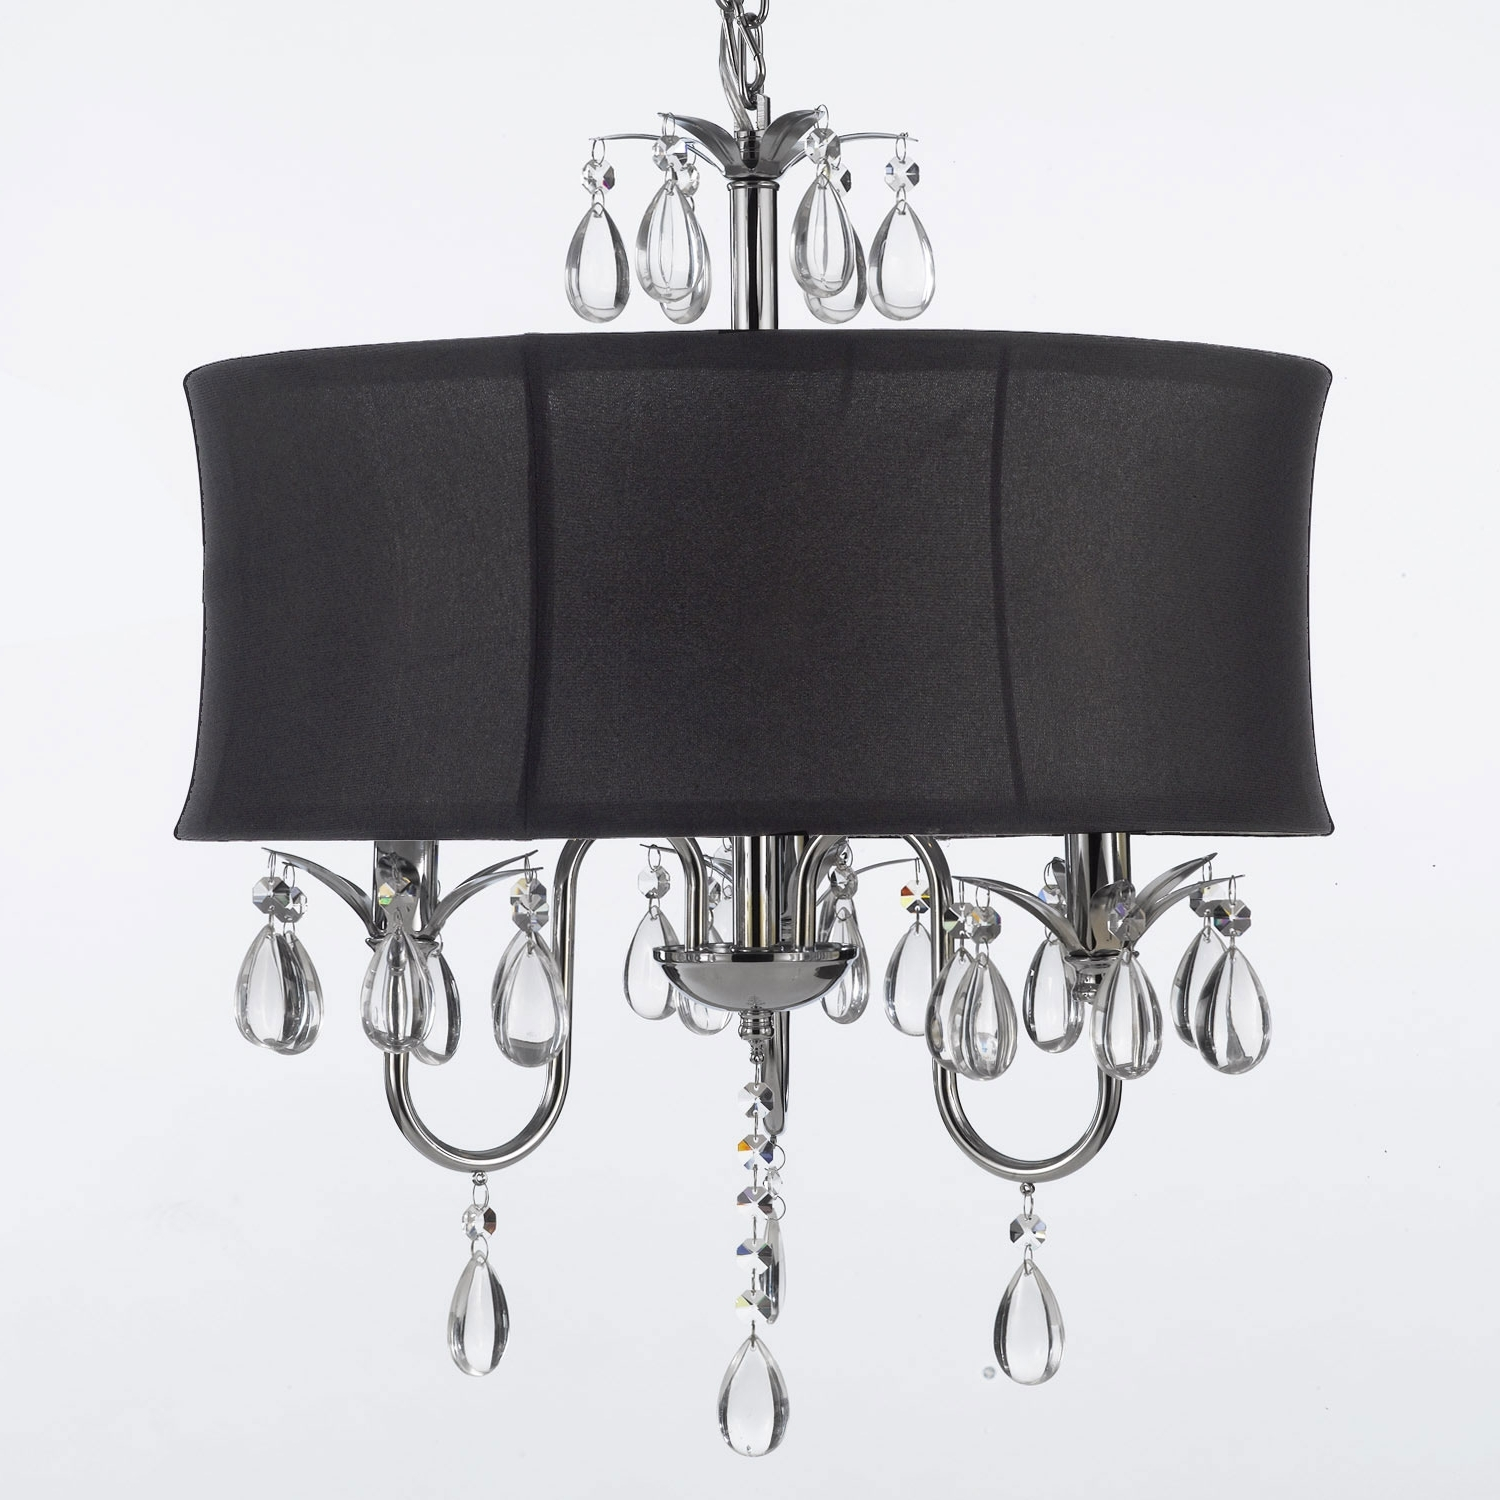 Trendy Black Chandeliers With Shades For Mini Chandeliers – Black, Crystal Mini Chandeliers (View 16 of 20)